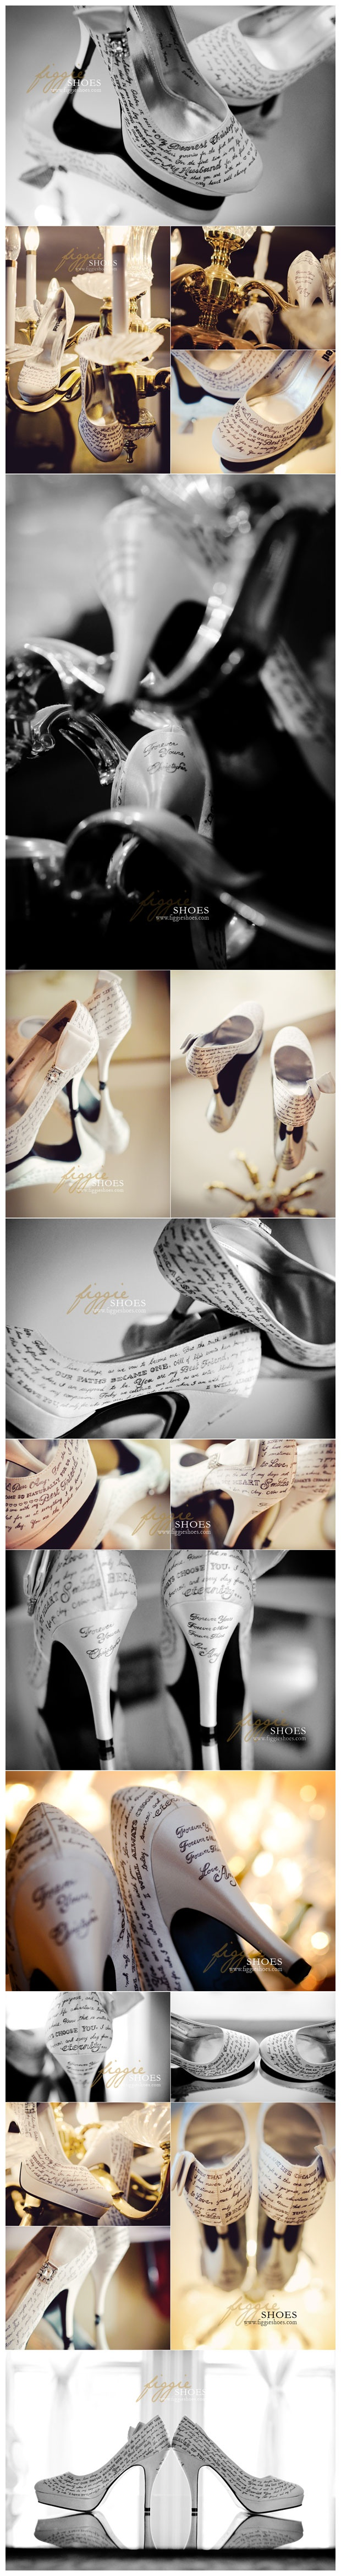 custom shoes, what a great idea!